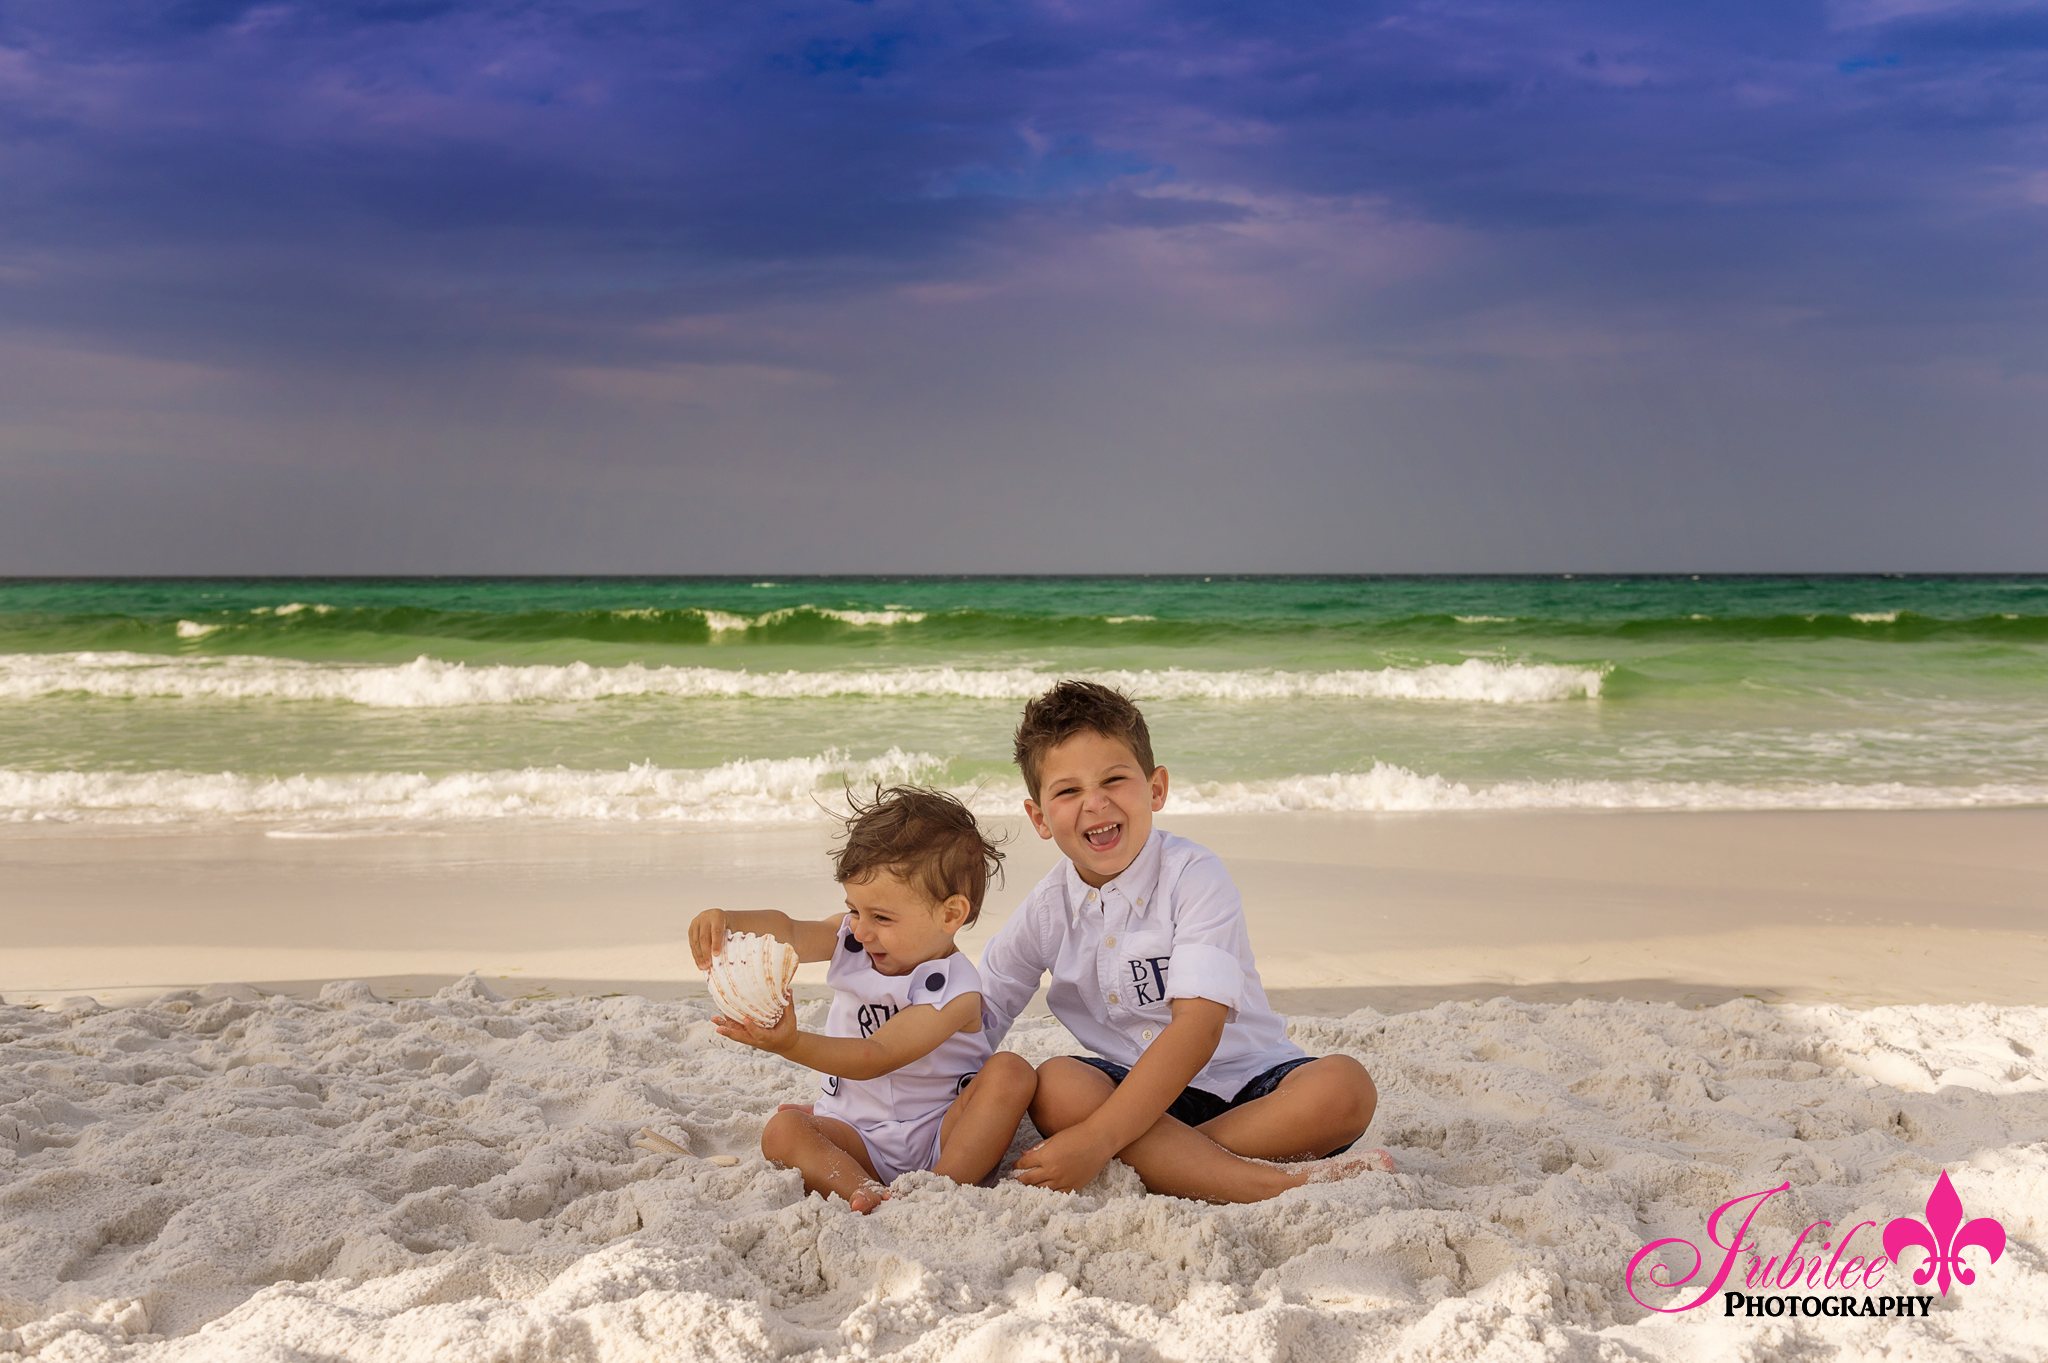 Destin_Morning_Photographer_0659